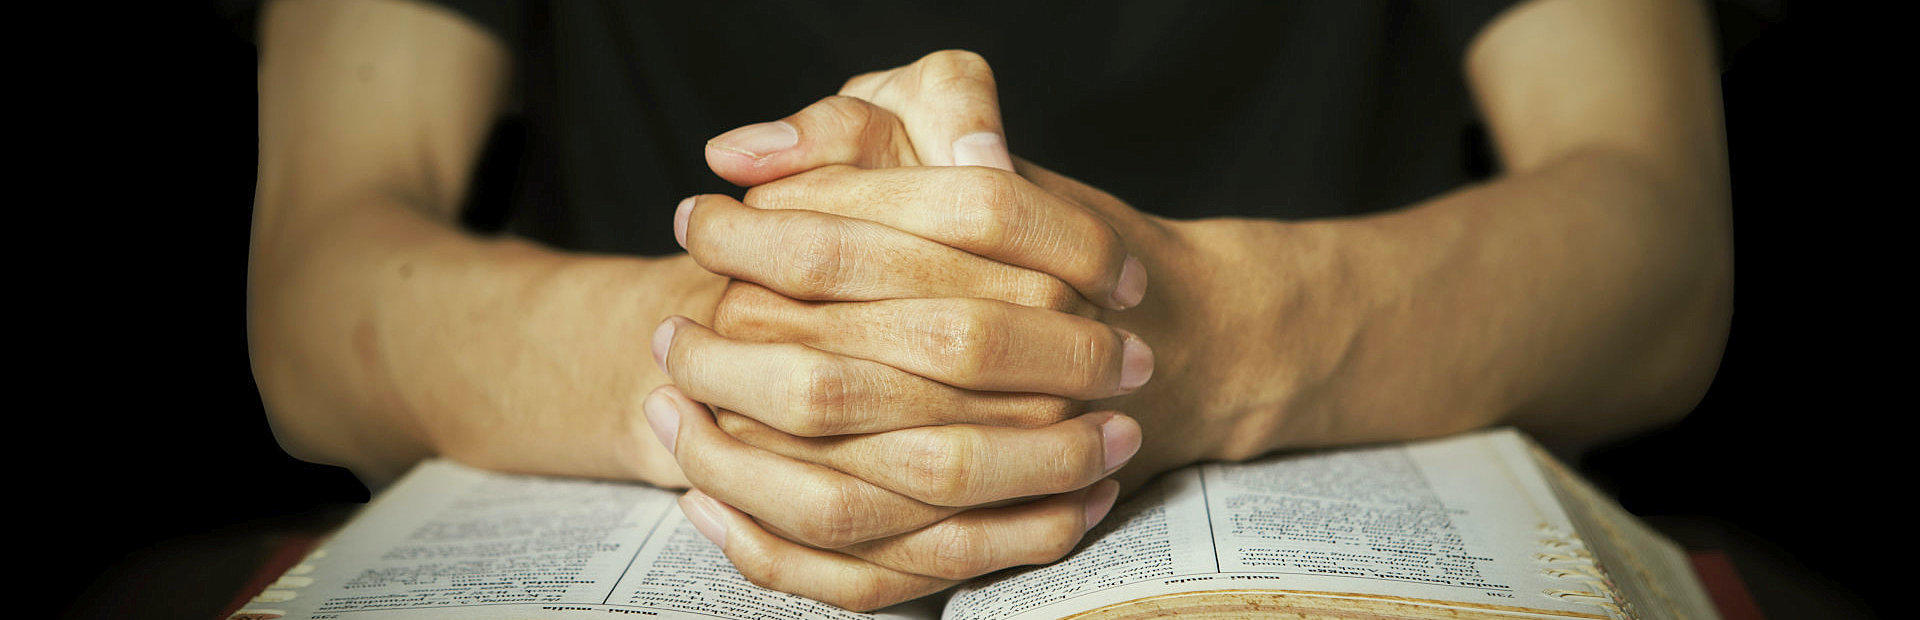 praying hand and Bible